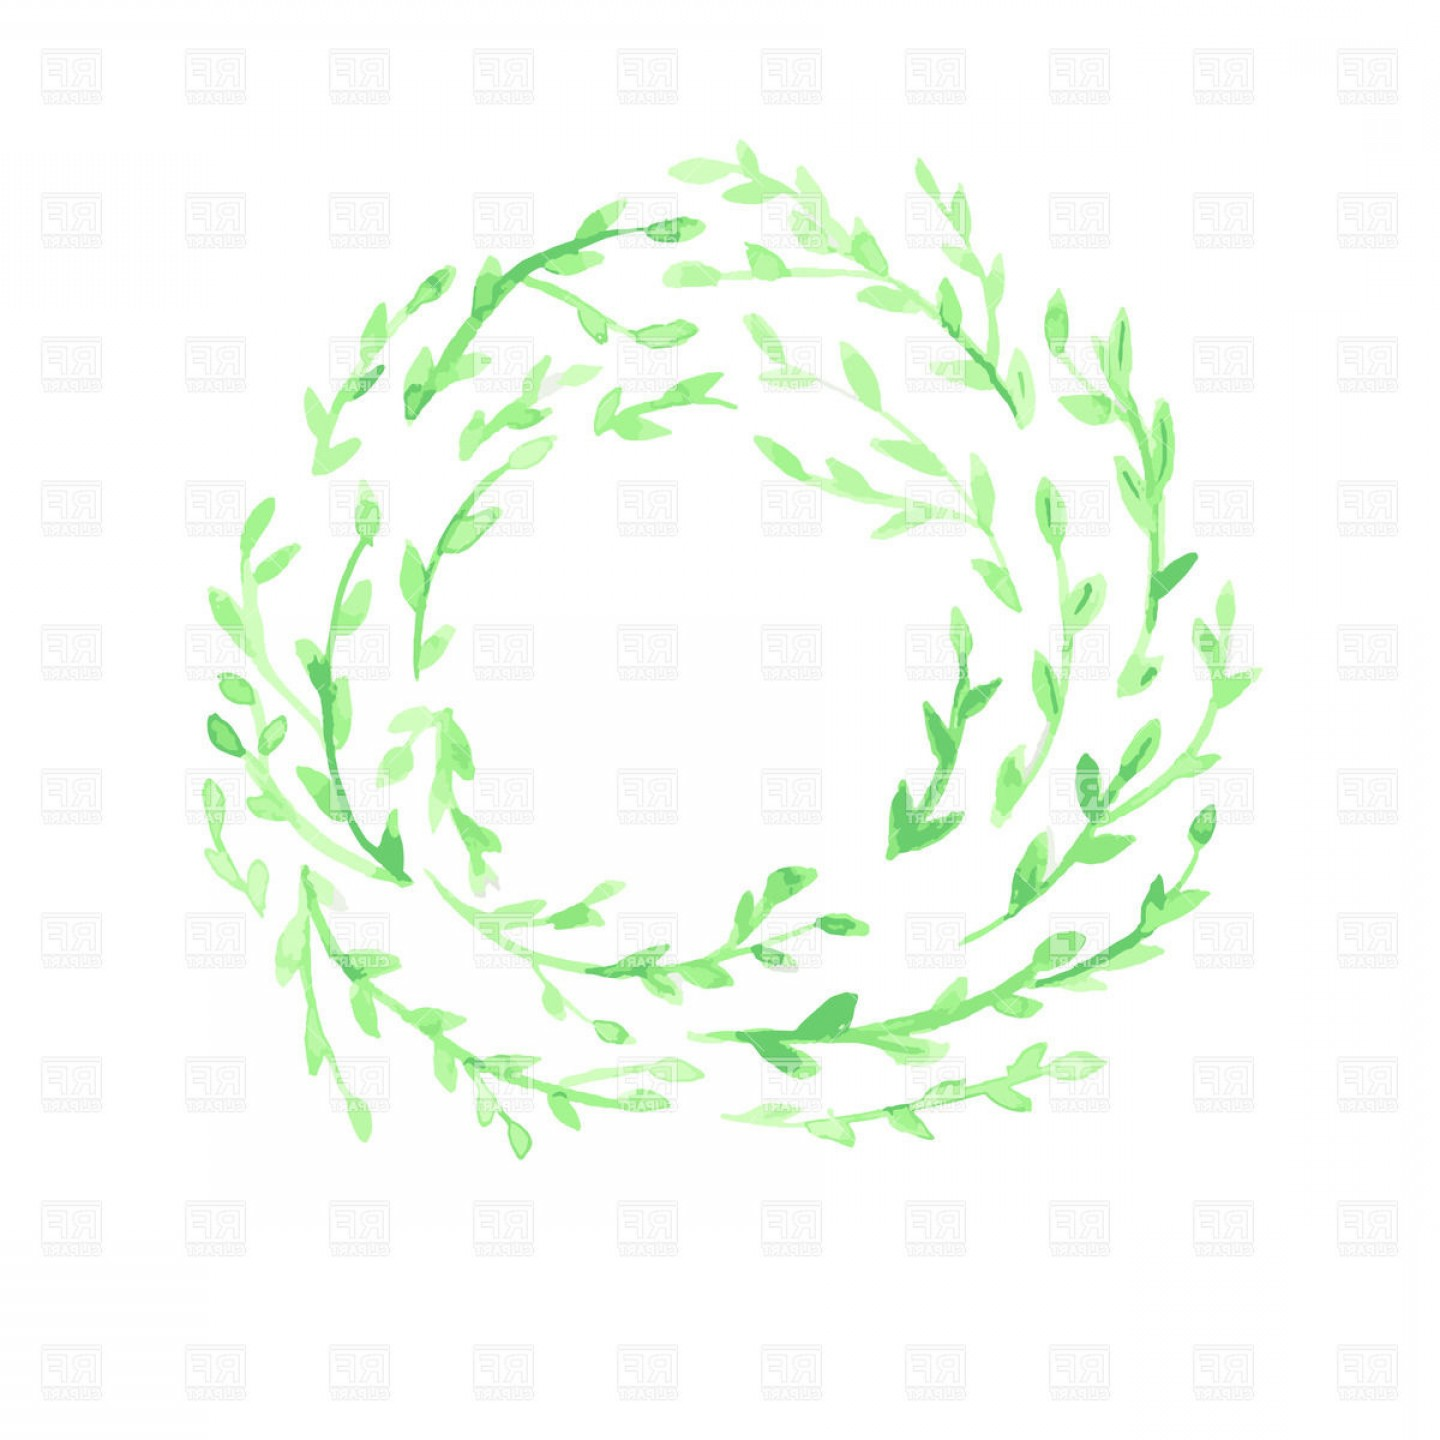 Watercolor Vector Background Free: Green Watercolor Leaf Wreath On White Background Vector Clipart